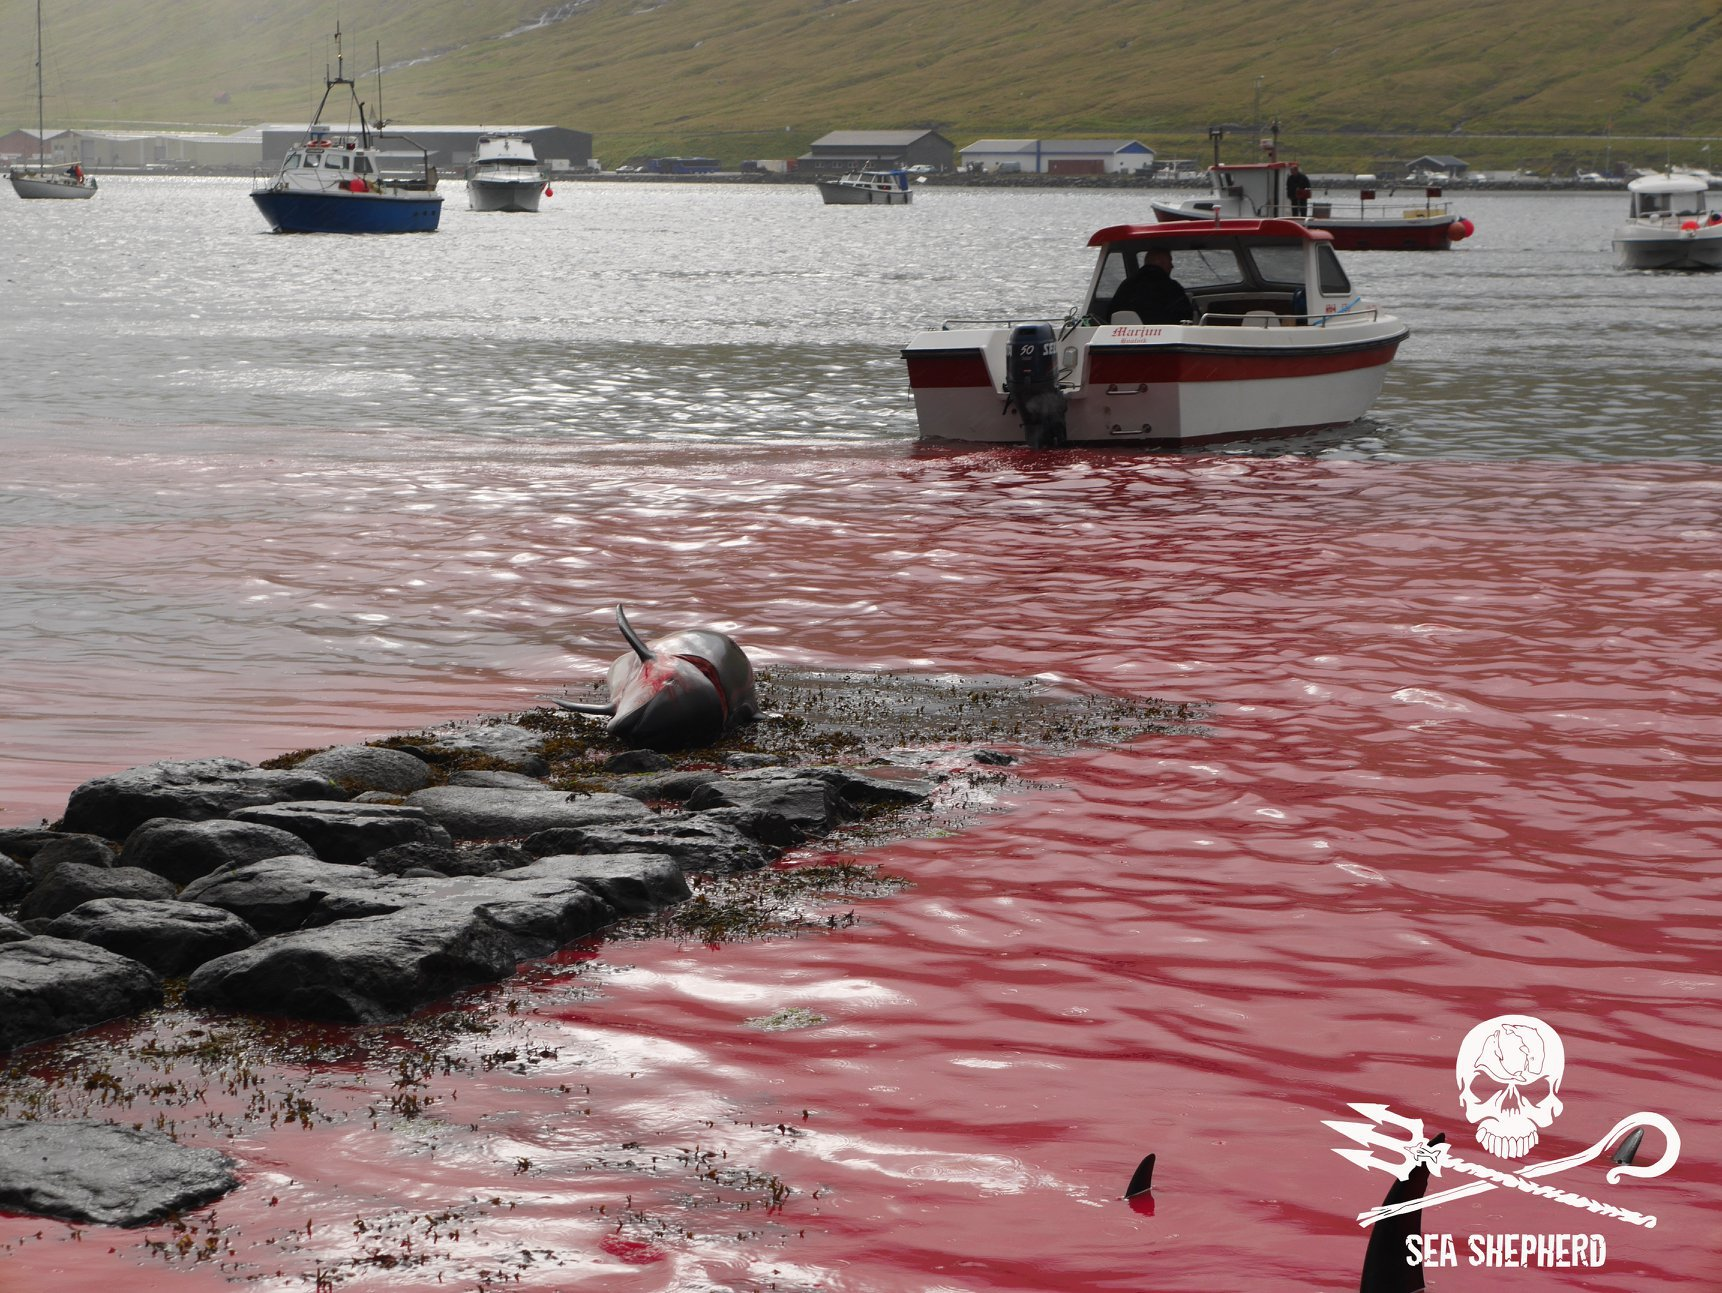 Grindadr?p of Atlantic White Sided Dolphins & Pilot Whales at Hvalvik in the Faroe Islands on the 11th September 2018 Photos by Sea Shepherd UK's volunteer crew on Operation Bloody Fjords 2018